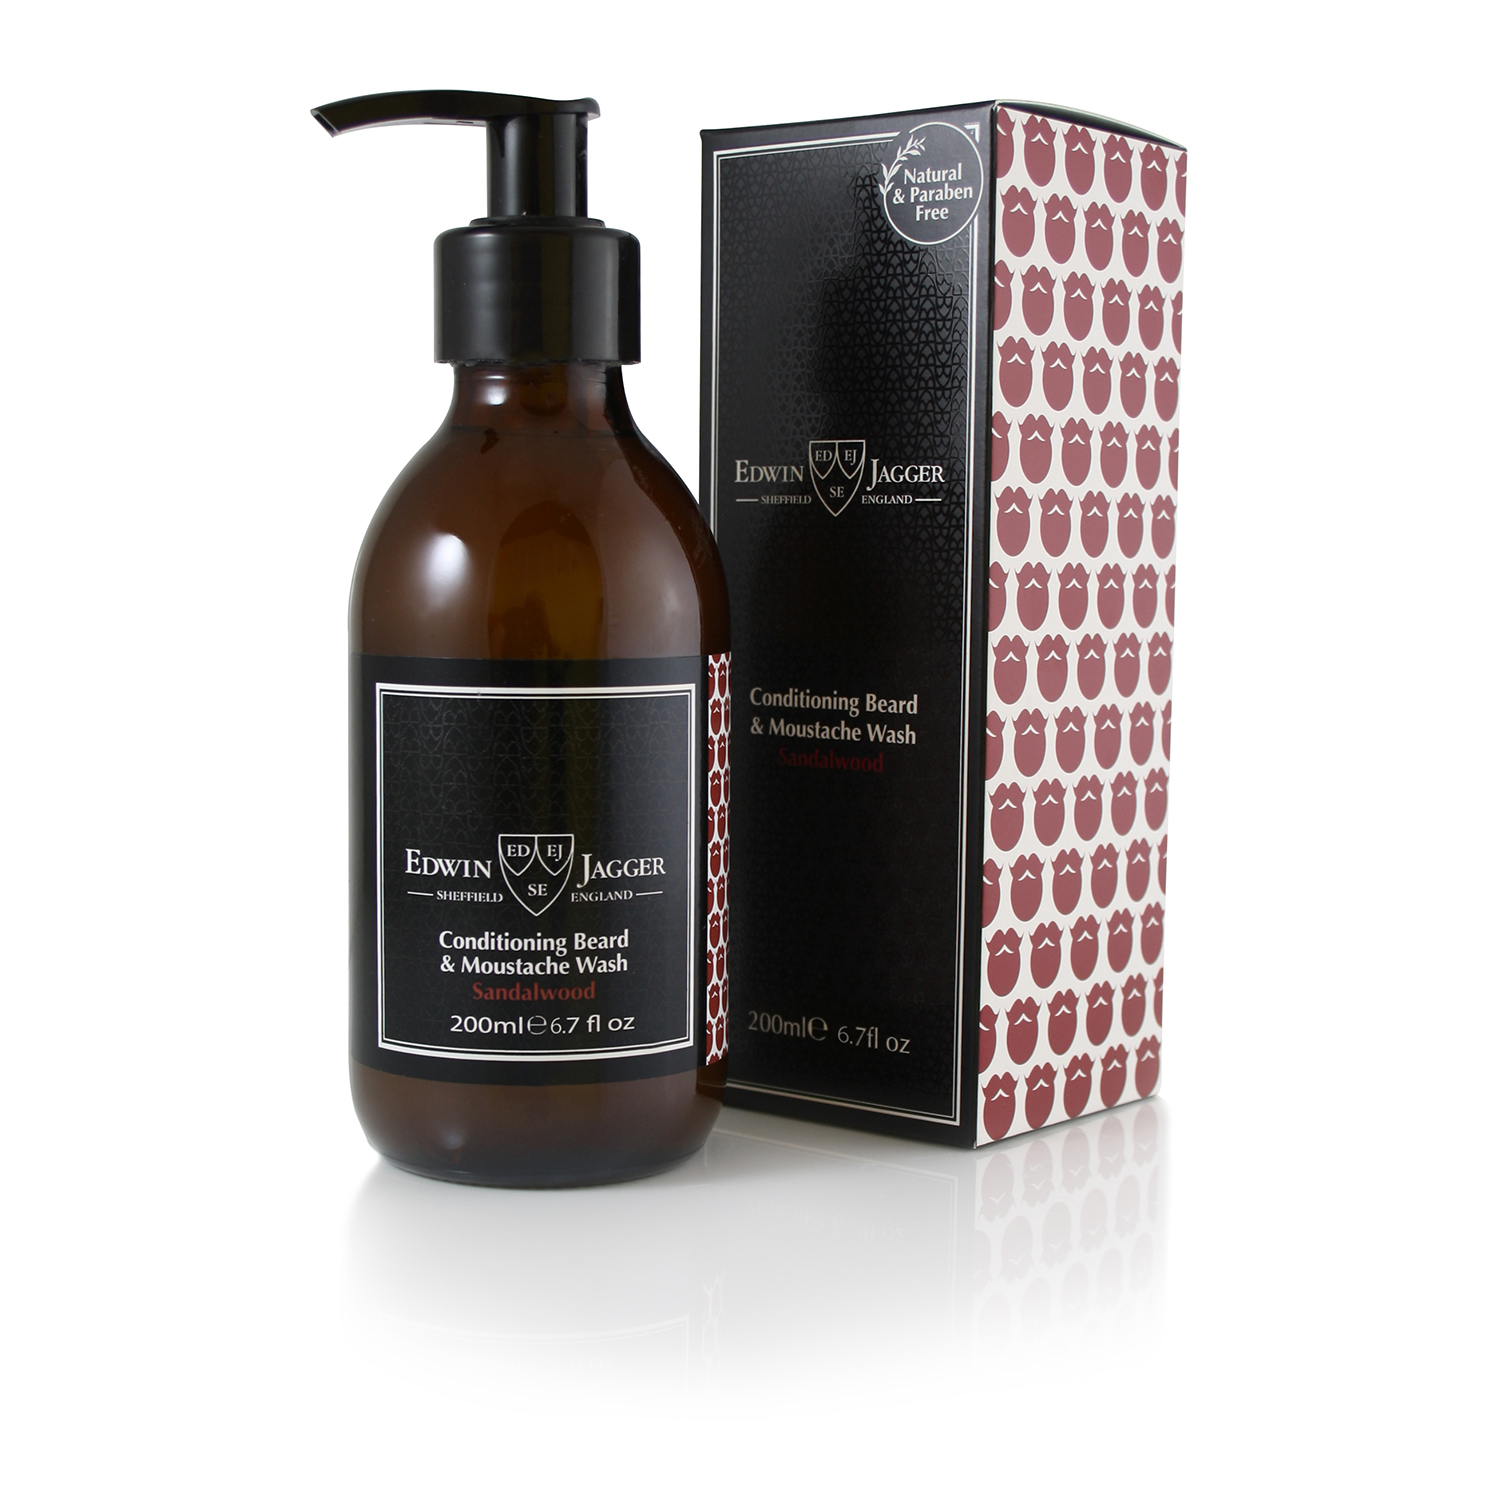 Edwin Jagger – Sandalwood Conditioning Beard/Moustache Wash & Red Comb Set